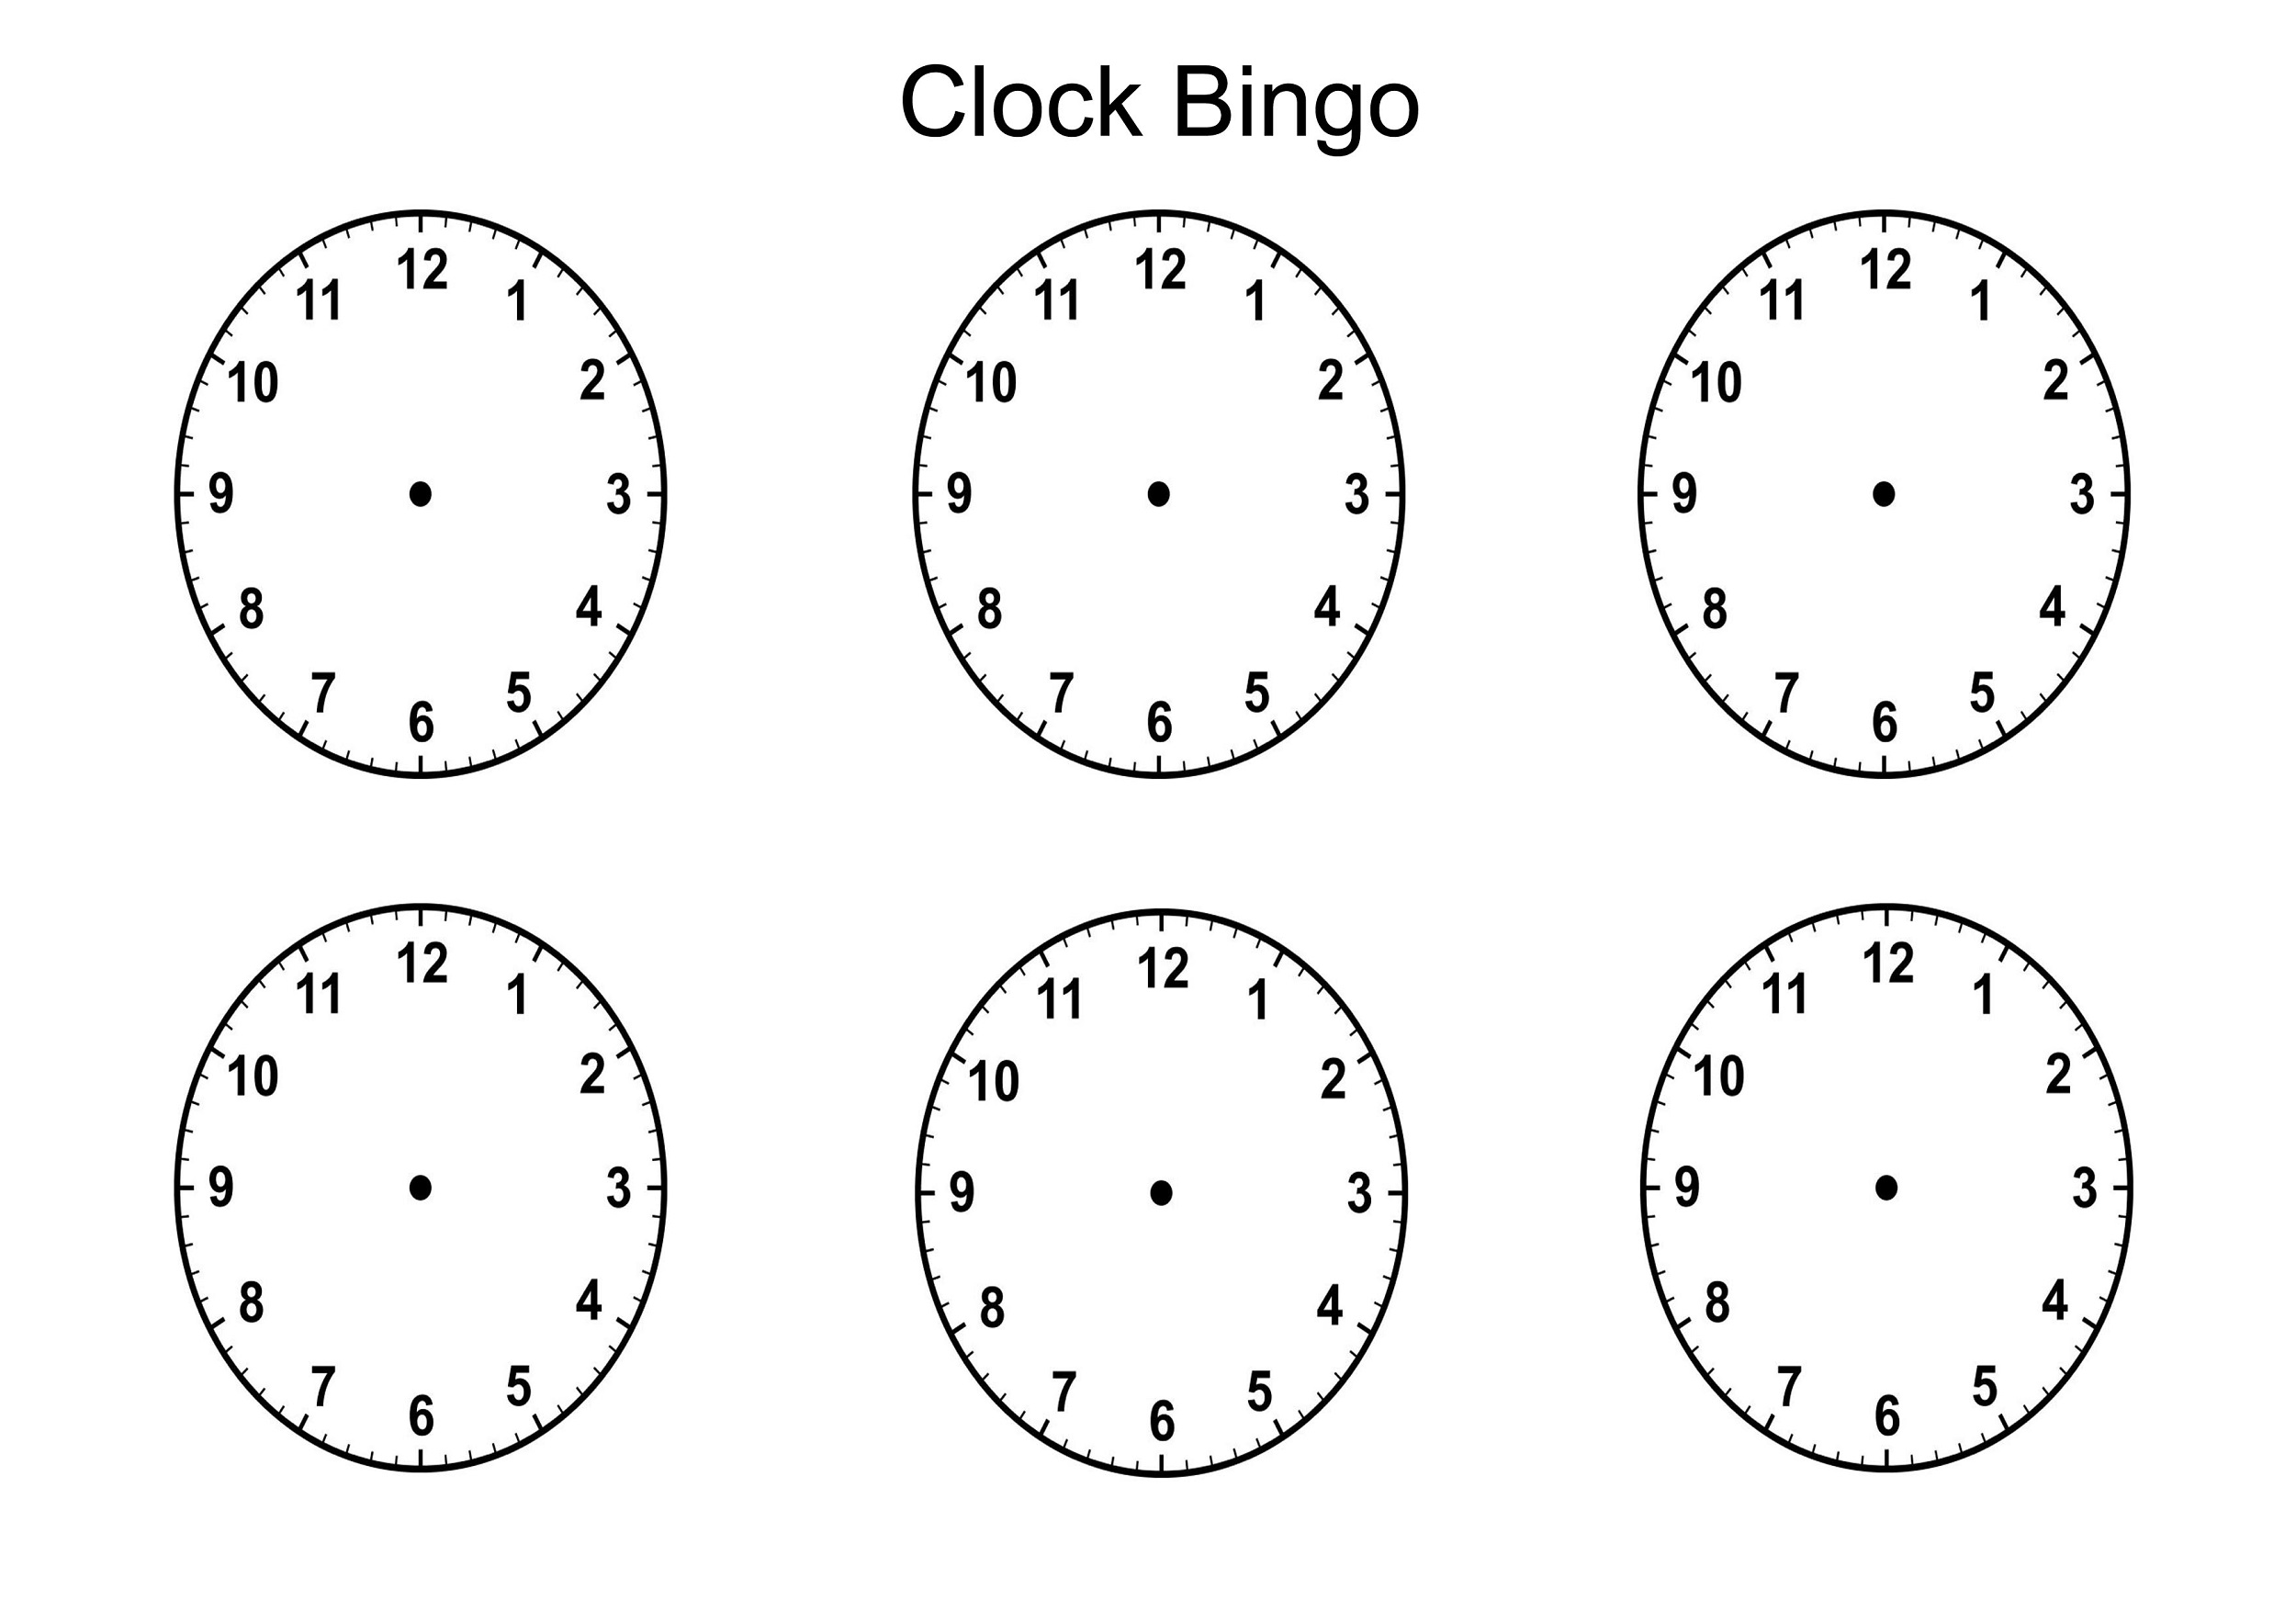 worksheet Blank Clocks Worksheet blank clock face activity shelter template bingo